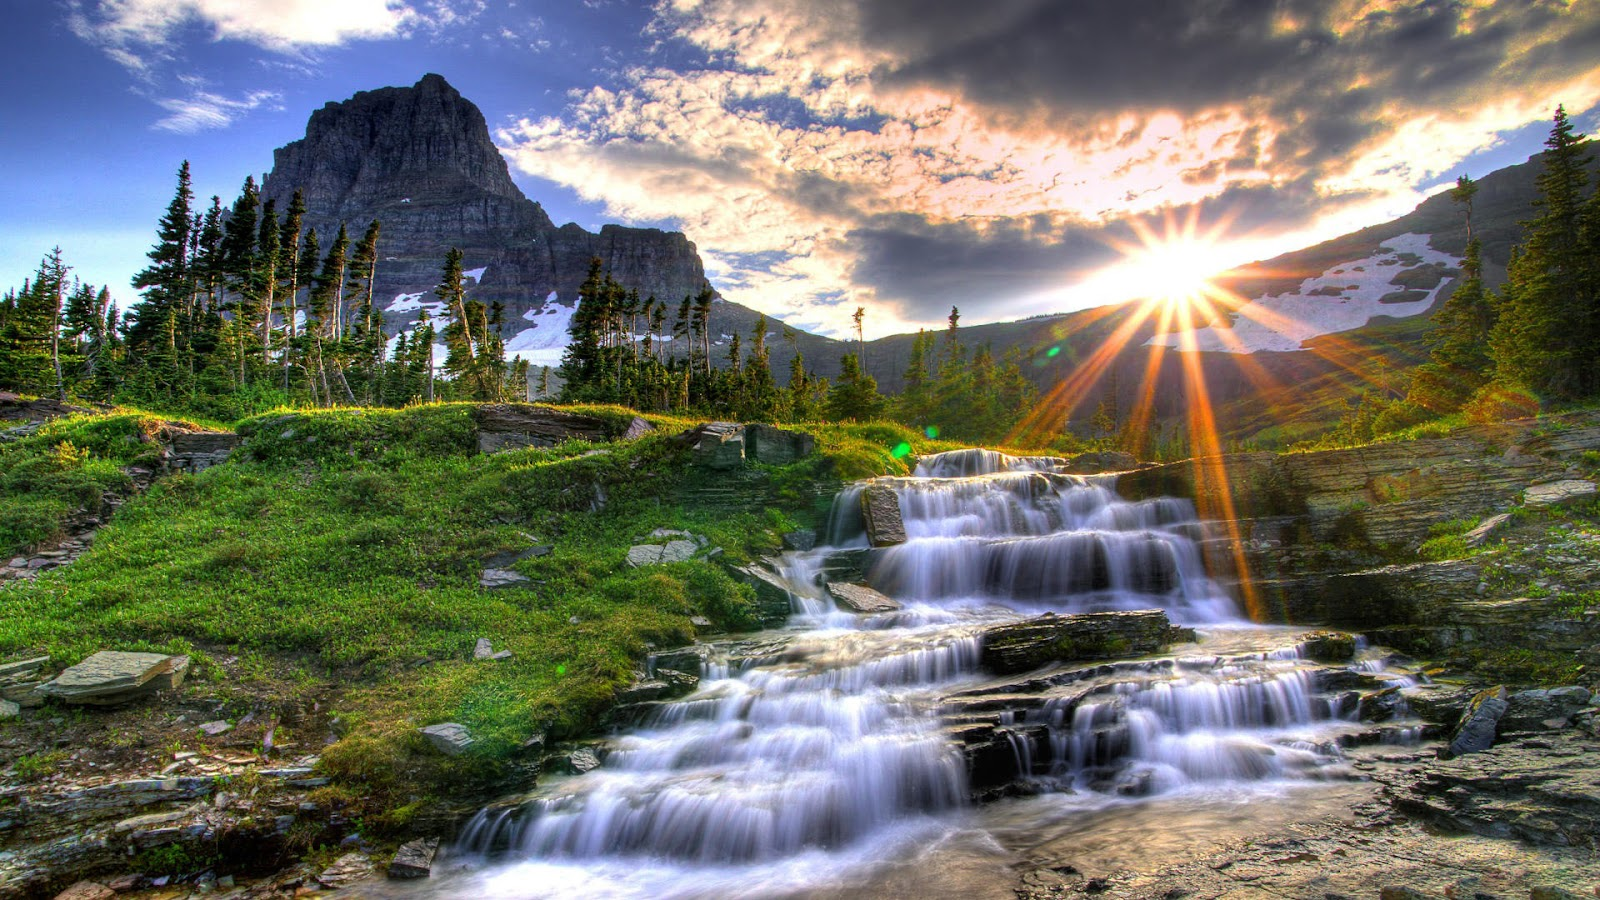 http://4.bp.blogspot.com/-0JqsCsbZXbc/UEhXh3dfF6I/AAAAAAAAA3U/wAyasQ9X3S4/s1600/flowing-water-shining-sun-full-HD-nature-background-wallpaper-for-laptop-widescreen.jpg